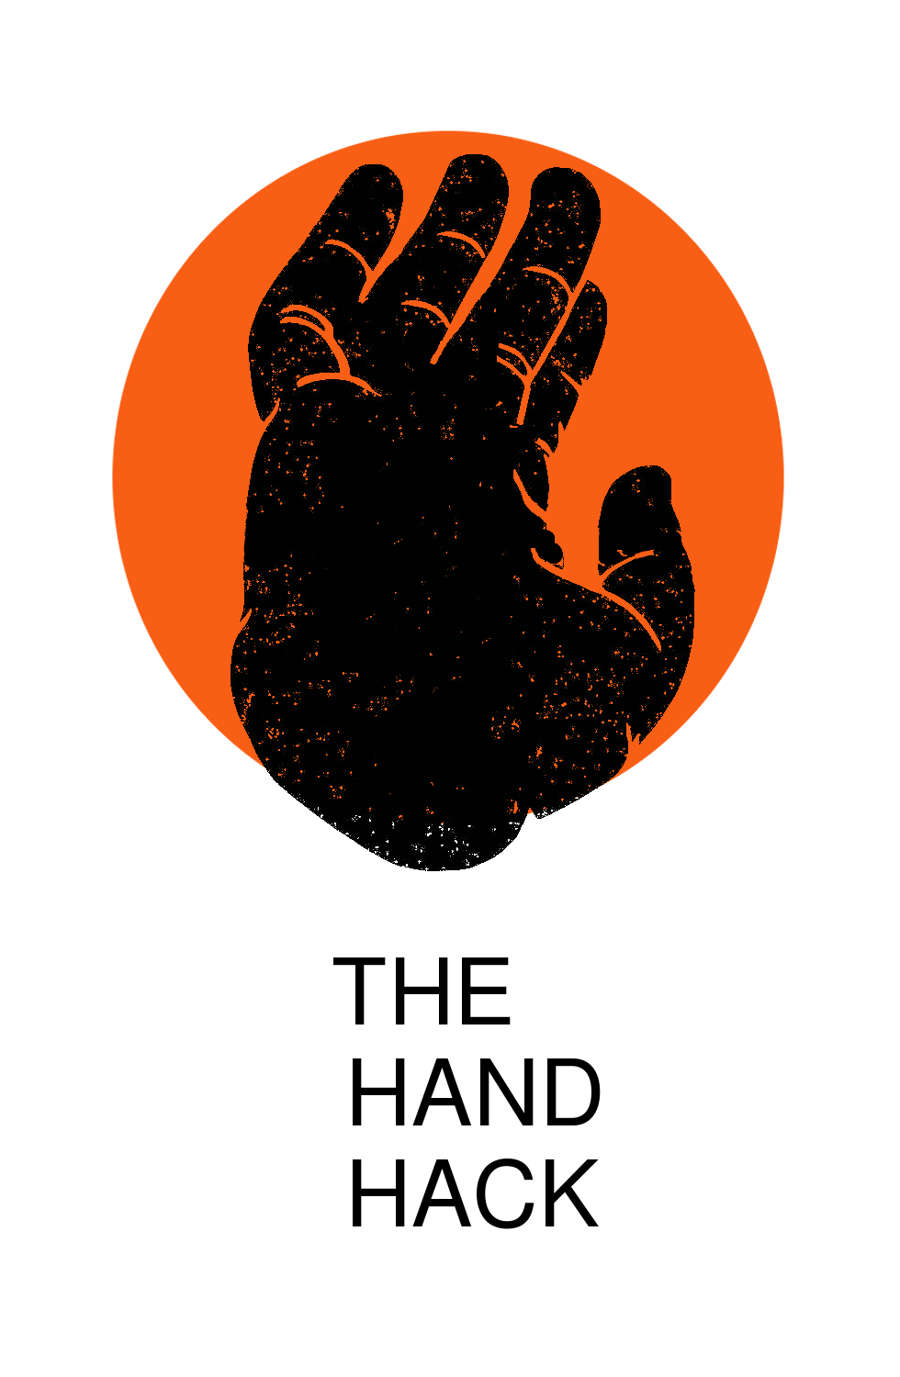 The Hand Hack